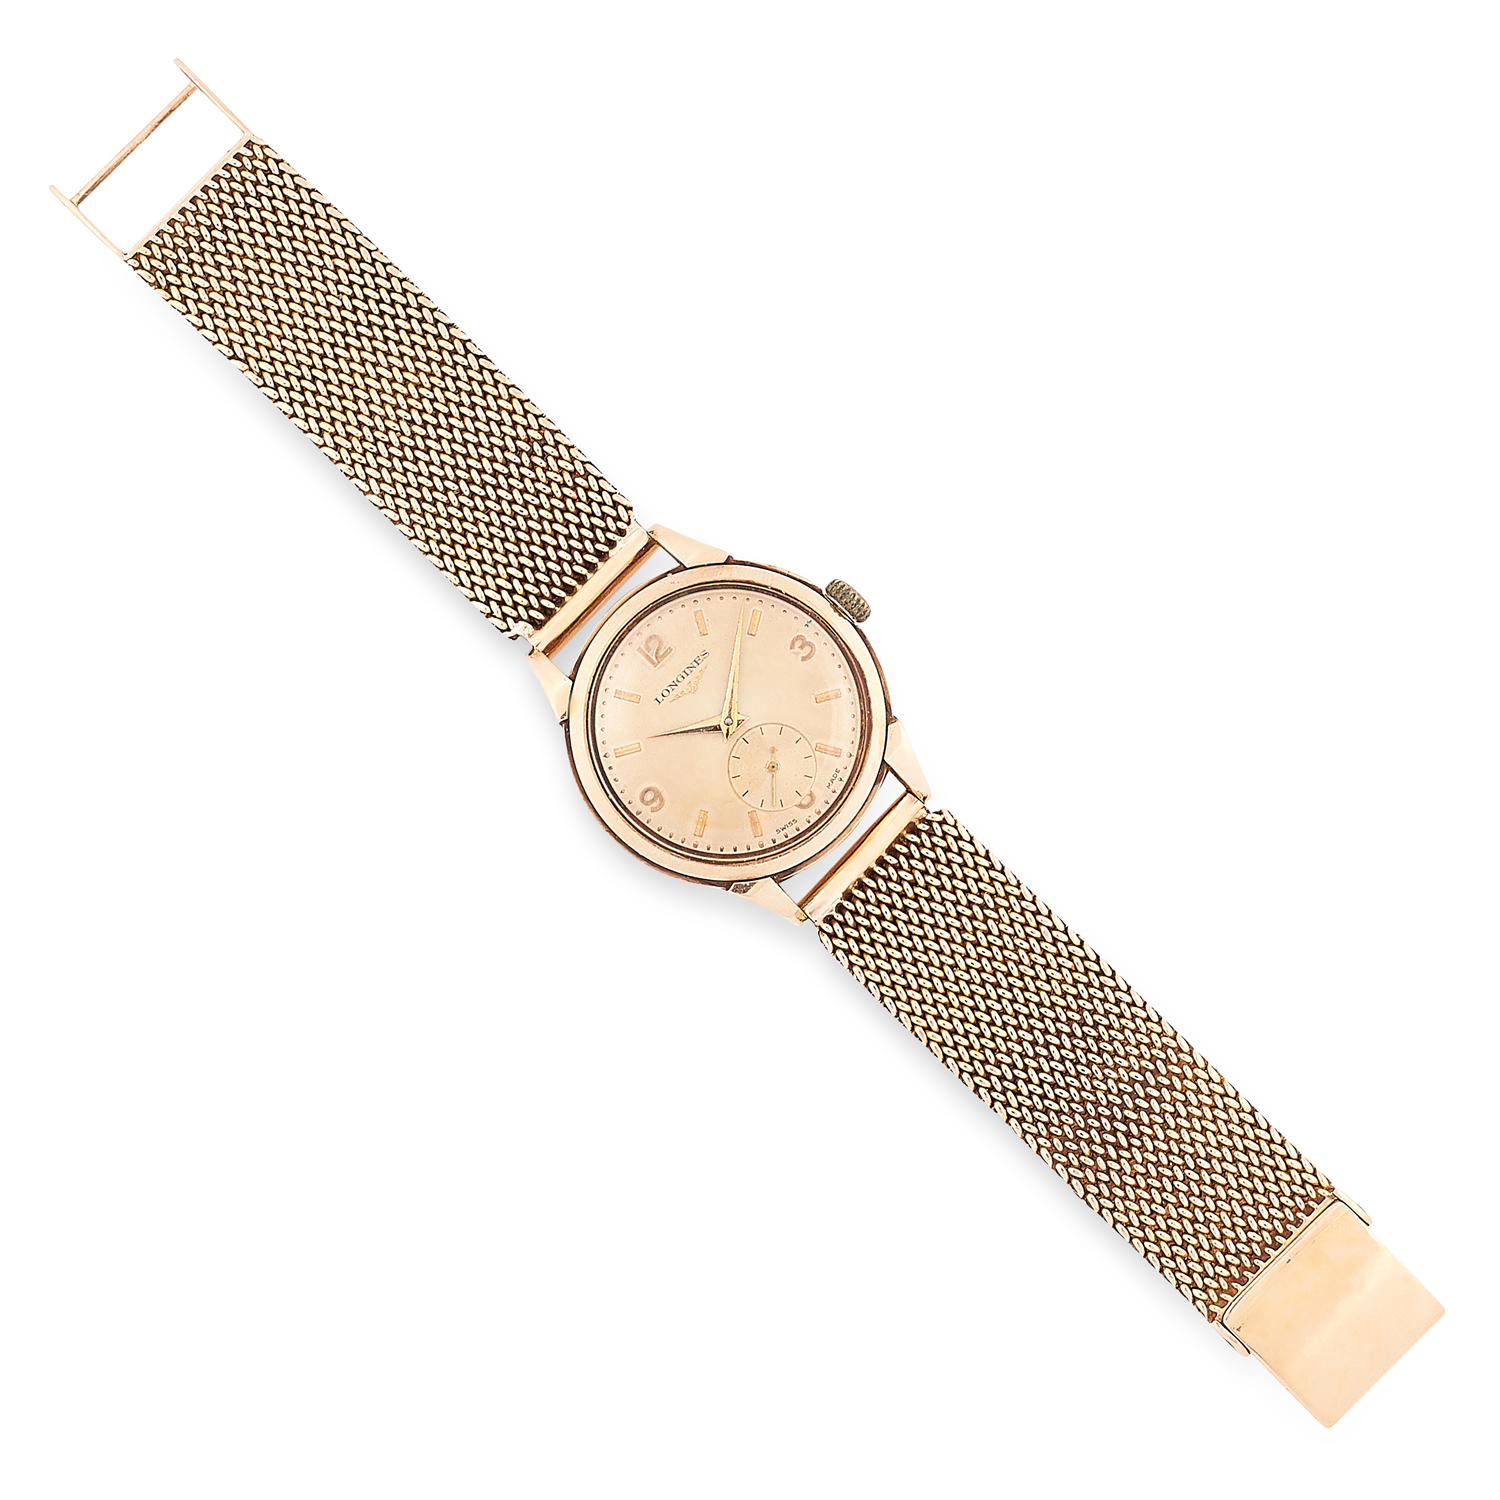 A GOLD GENTLEMAN'S WRISTWATCH, LONGINES the circular case of 33mm, gold dial with gold hands and